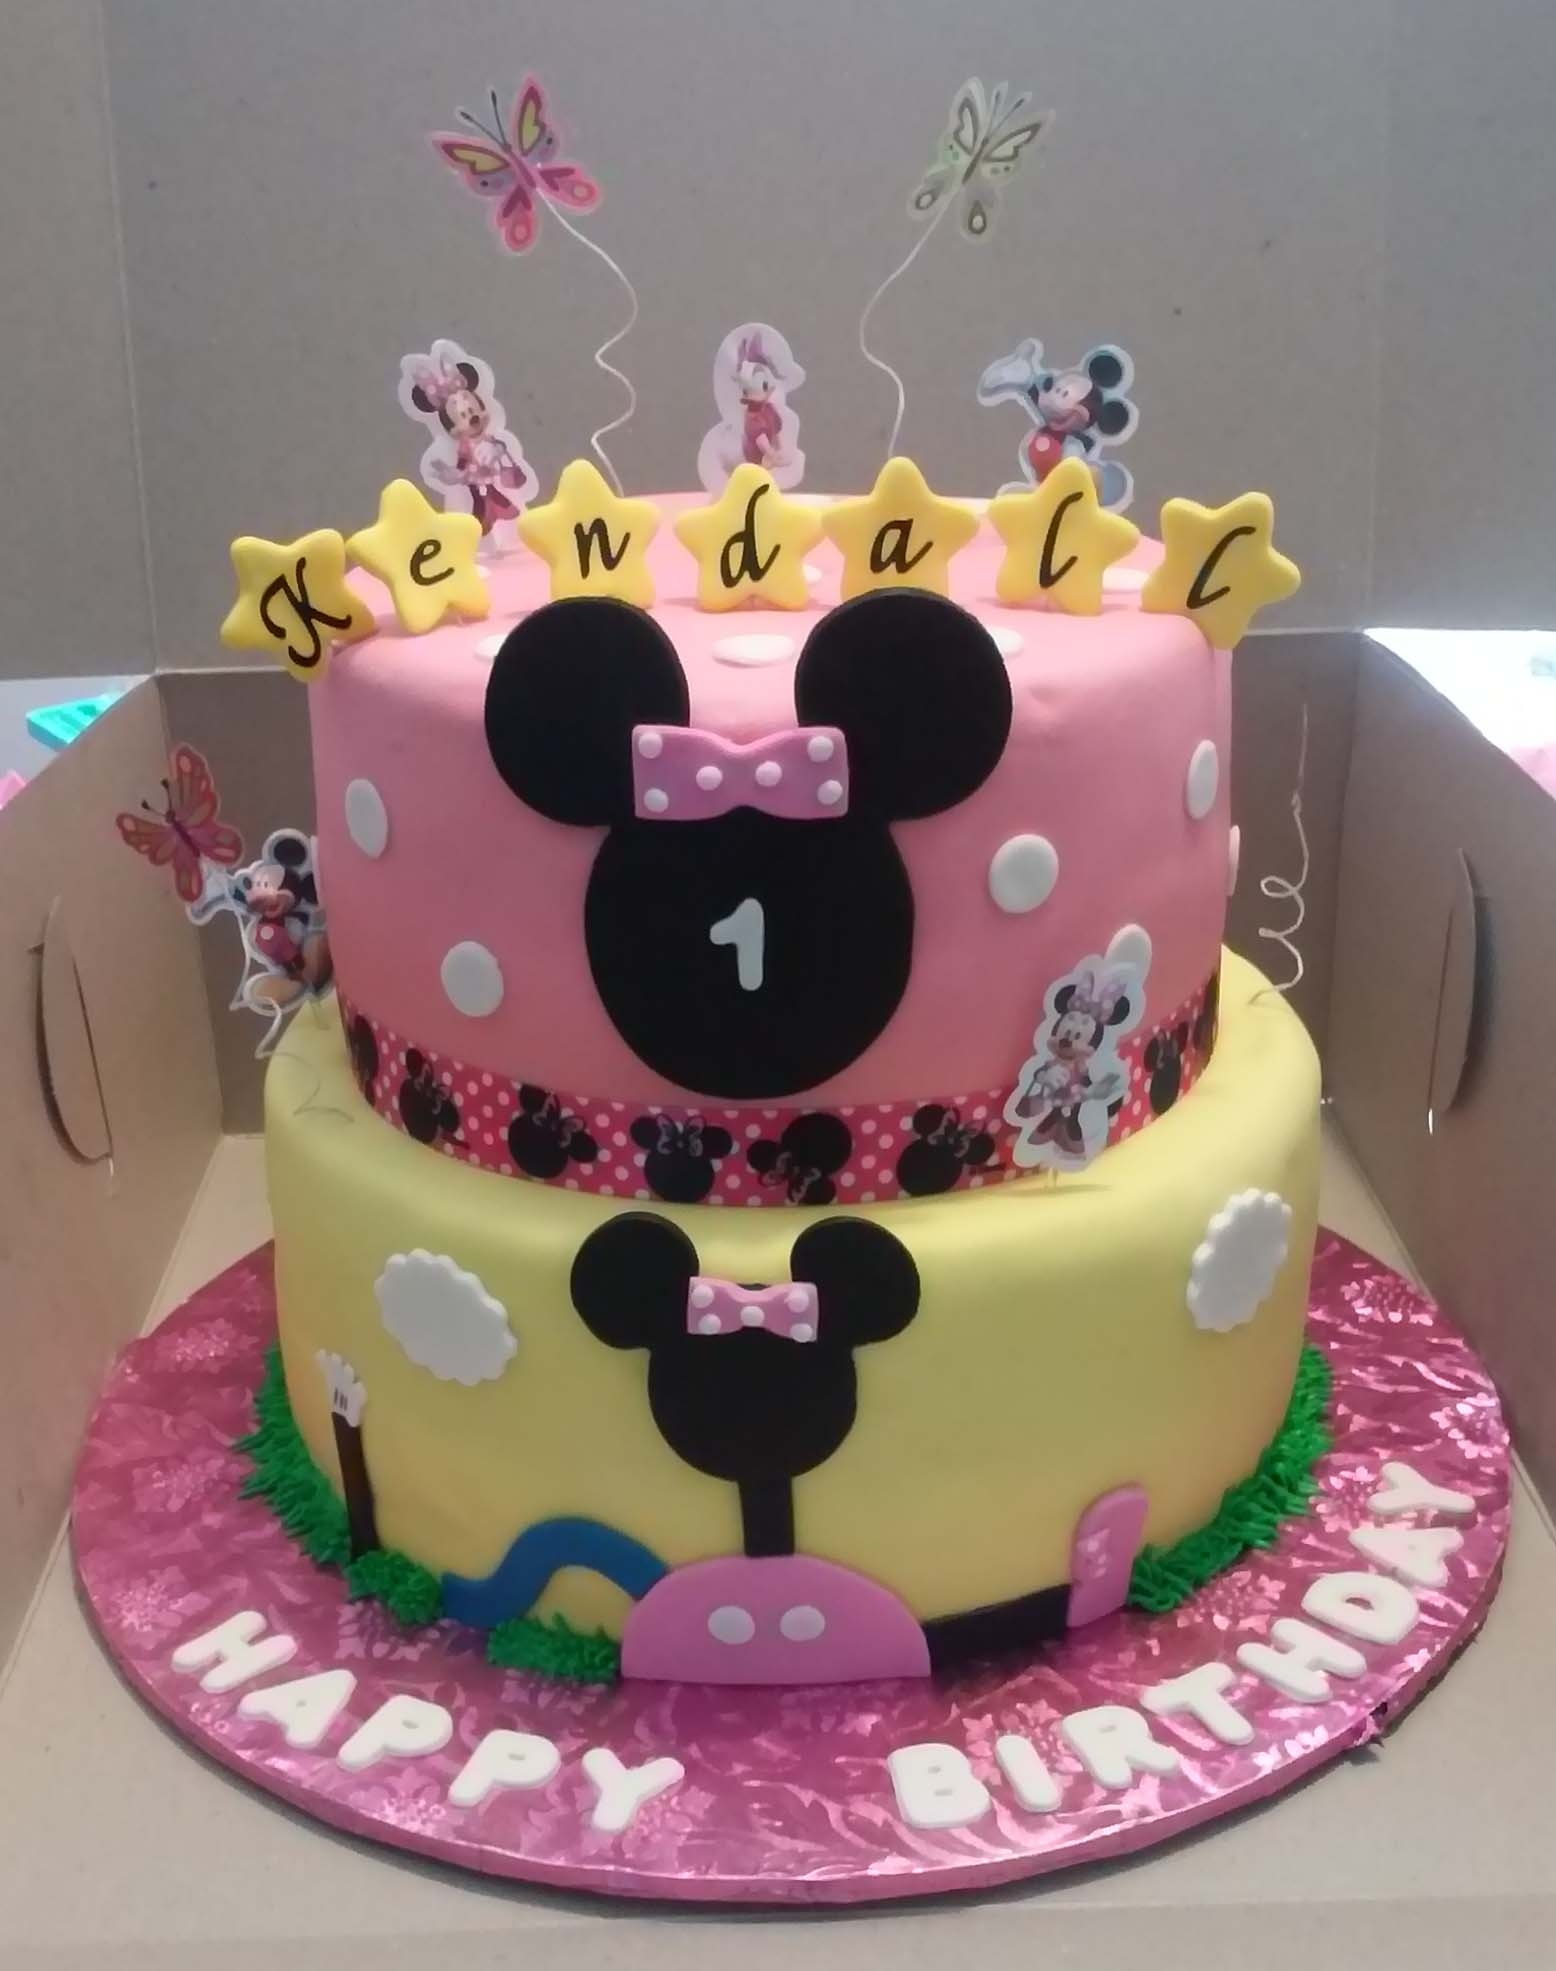 2 Tier Minnie Mouse Clubhouse Themed Birthday Cake 2 Tier Minnie Mouse Clubhouse themed Birthday Cake8' Top Tier: Chocolate Cake10' Bottom Tier: Yellow Cake in buttercream and...